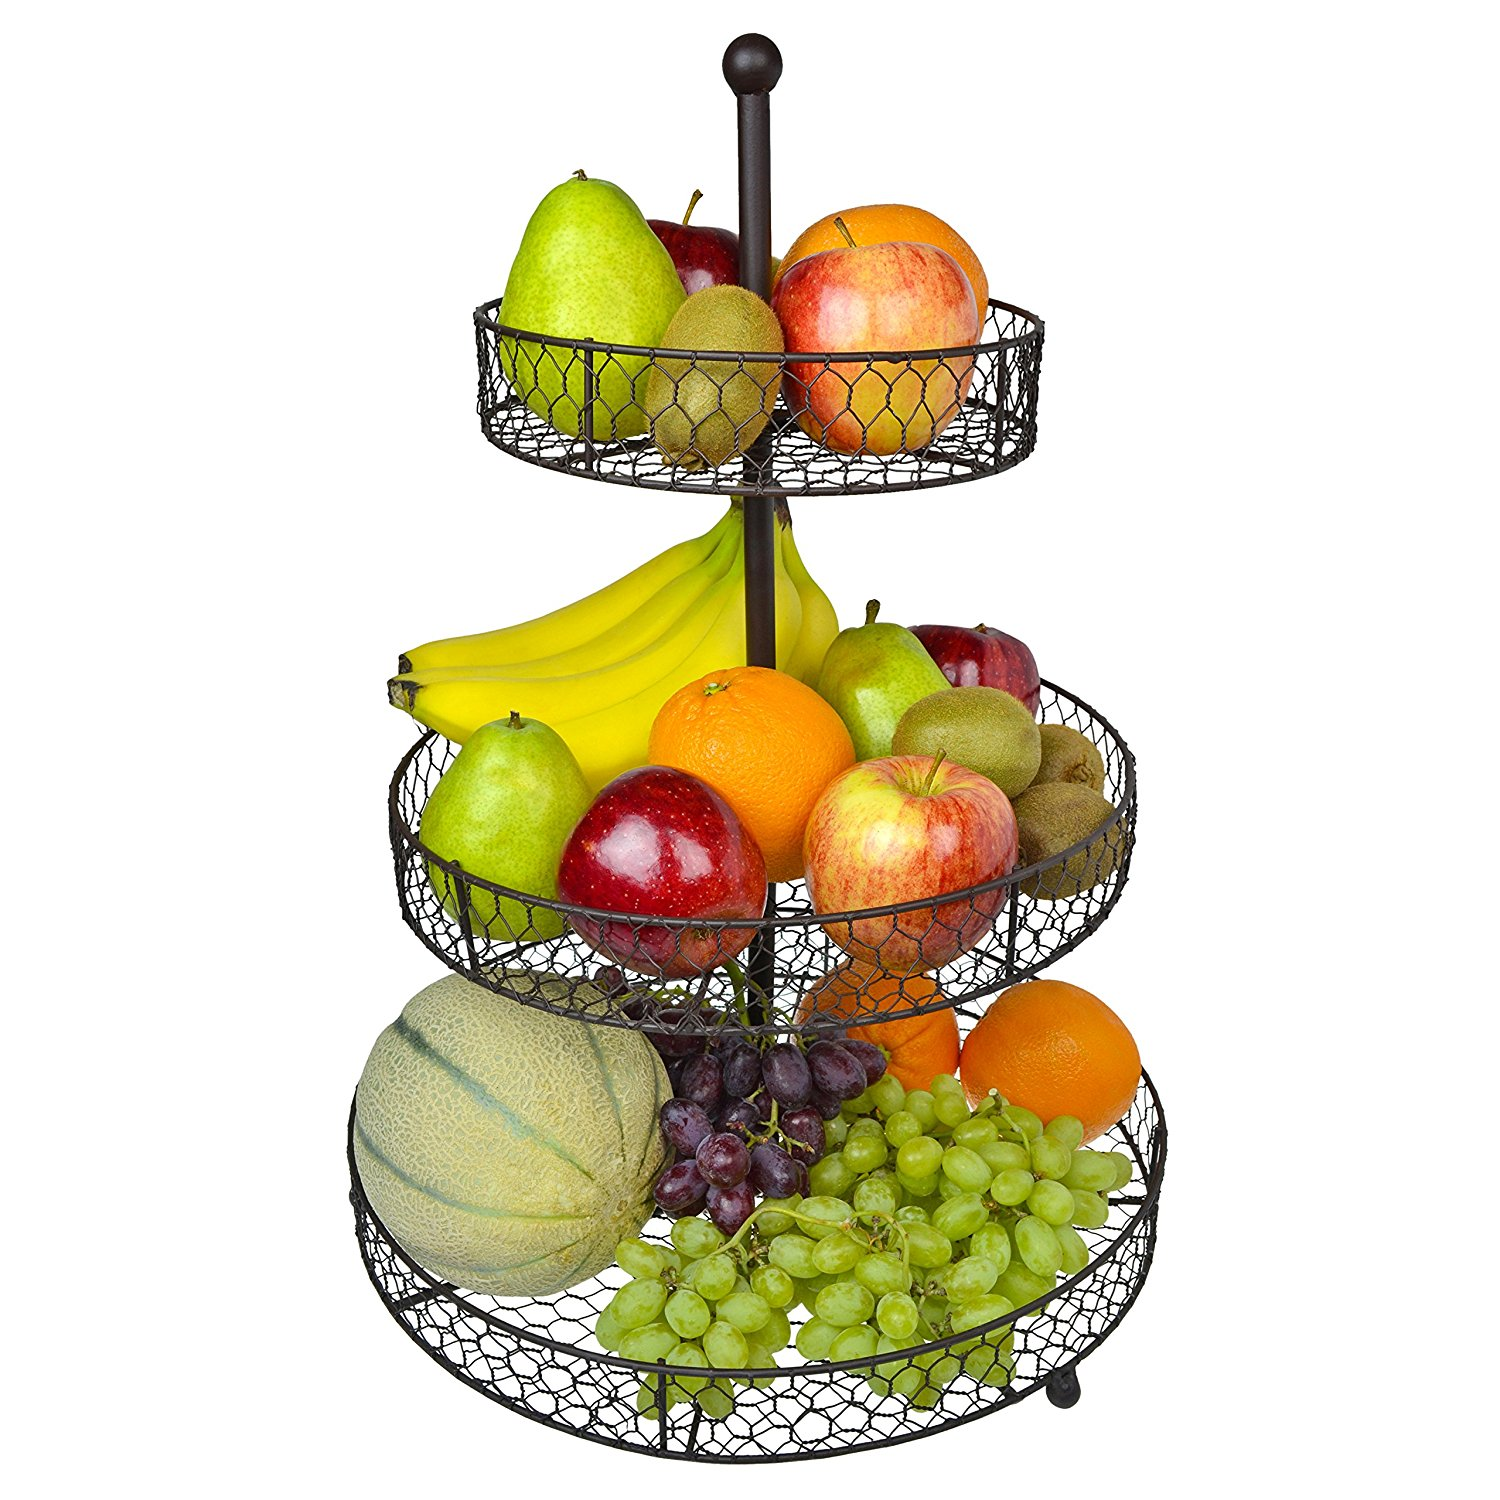 1500x1500 3 Tier Country Rustic Chicken Wire Style Metal Fruit Baskets